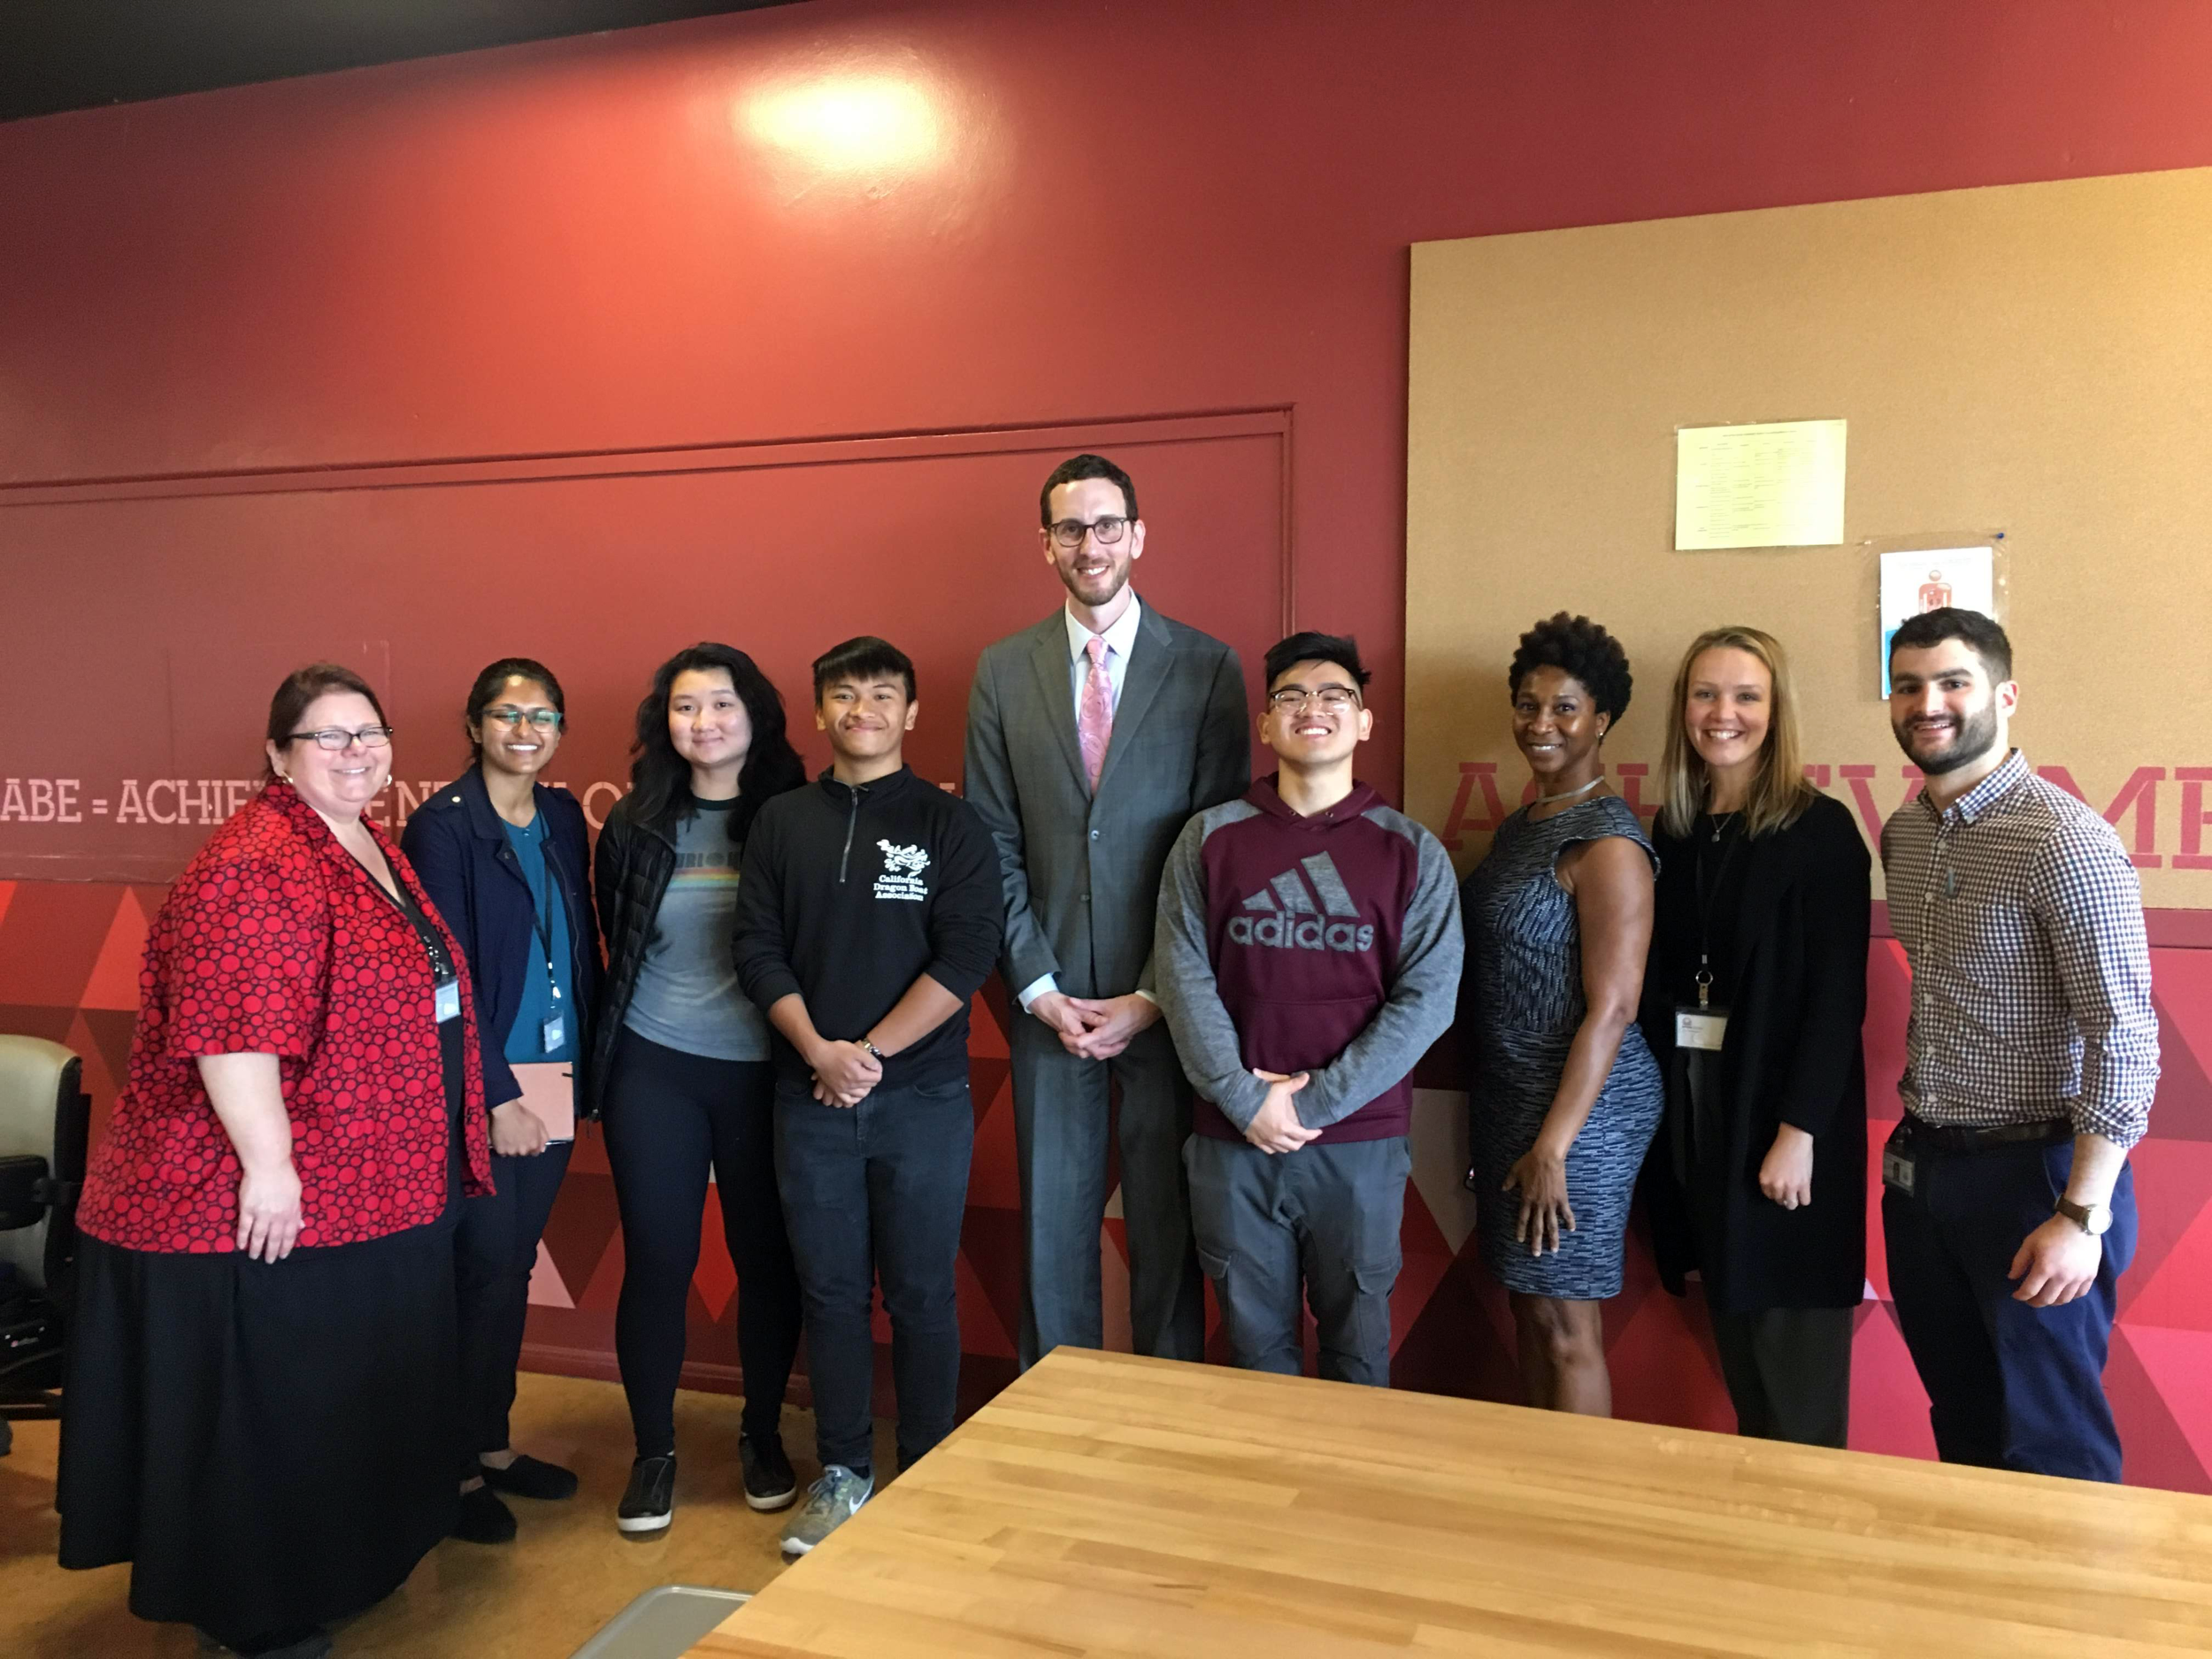 California State Senator Scott Wiener, center, joins Lincoln High School students for lunch, along with Student Nutrition Services staff and Executive Director Jennifer LeBarre, left